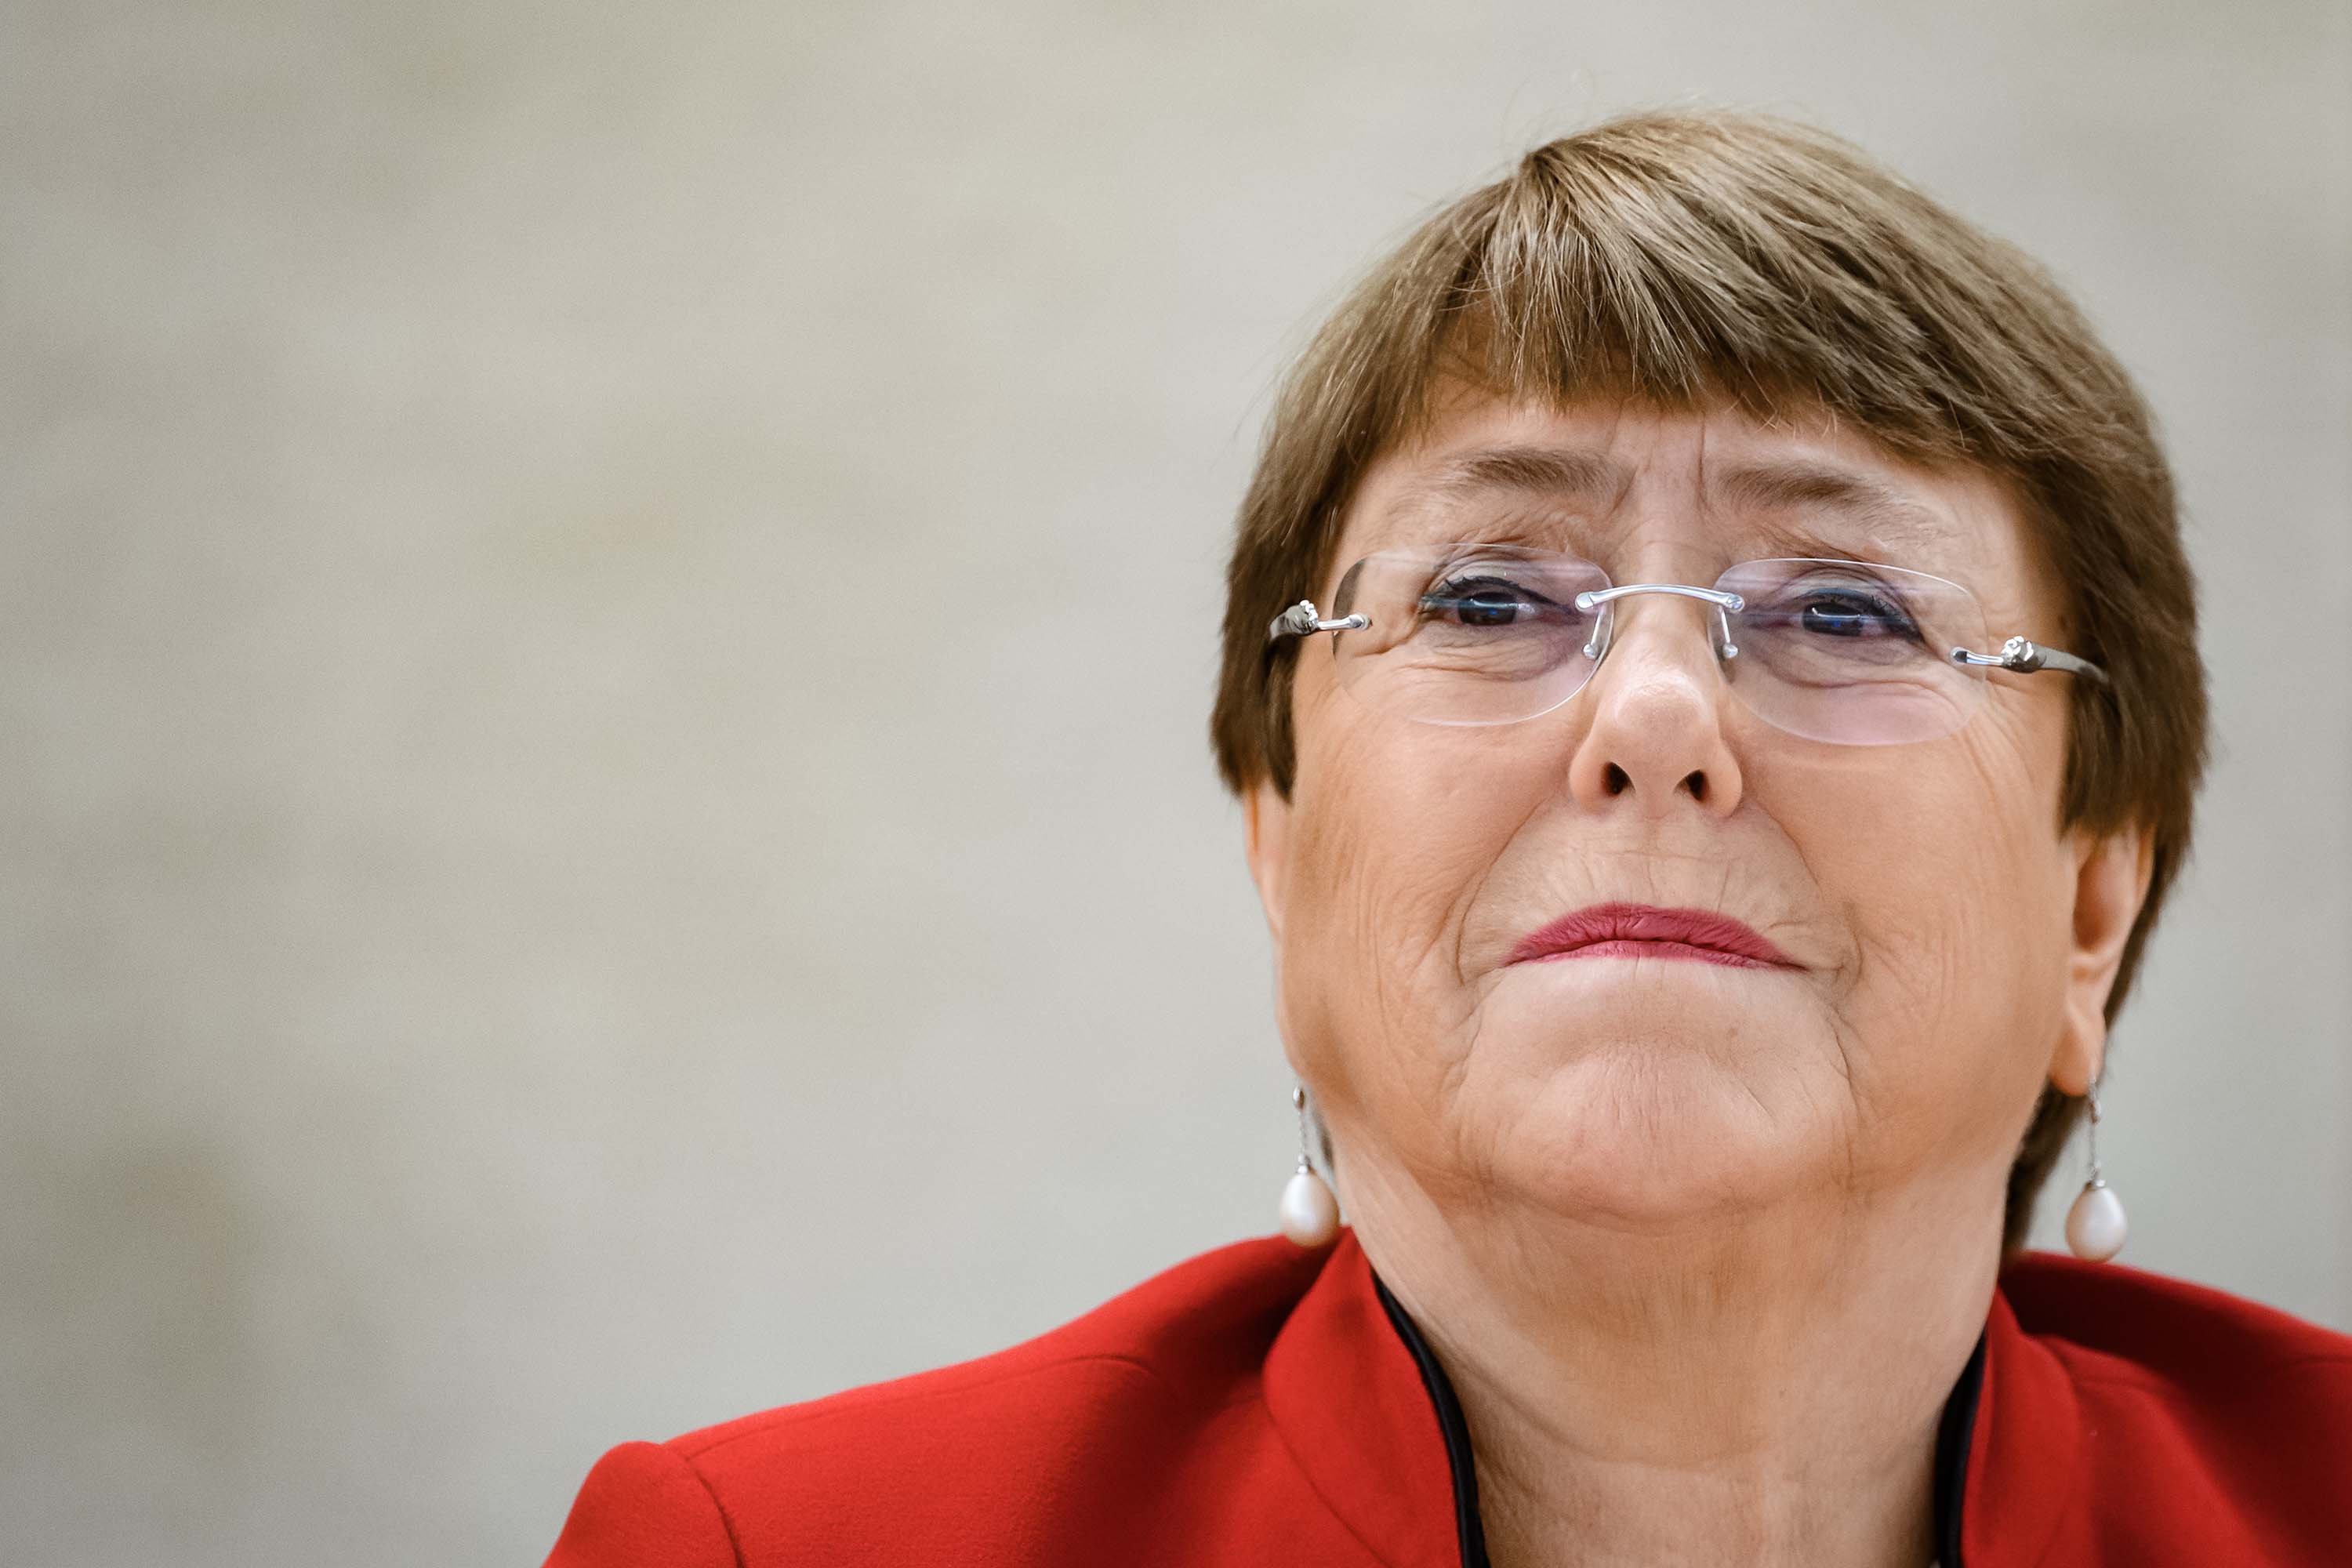 United Nations High Commissioner for Human Rights Michelle Bachelet is pictured attending the opening of the UN Human Rights Council's annual session on February 24, in Geneva, Swizterland.